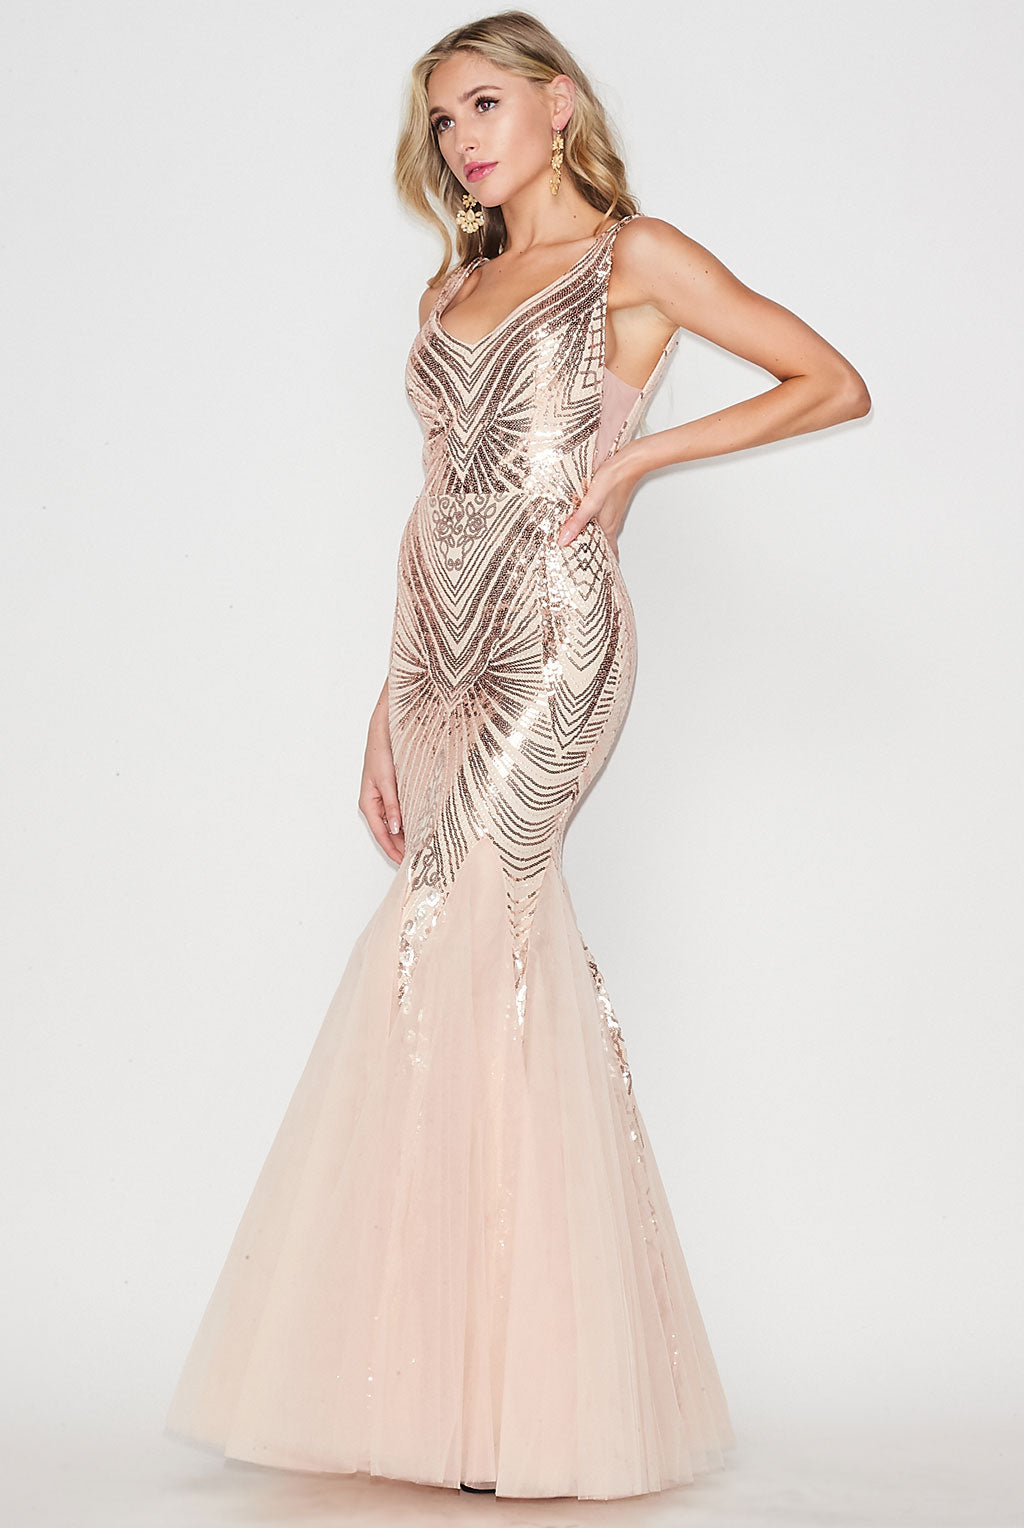 Teeze Me | Sleeveless Sequin Mesh Long Prom Dress | Blush